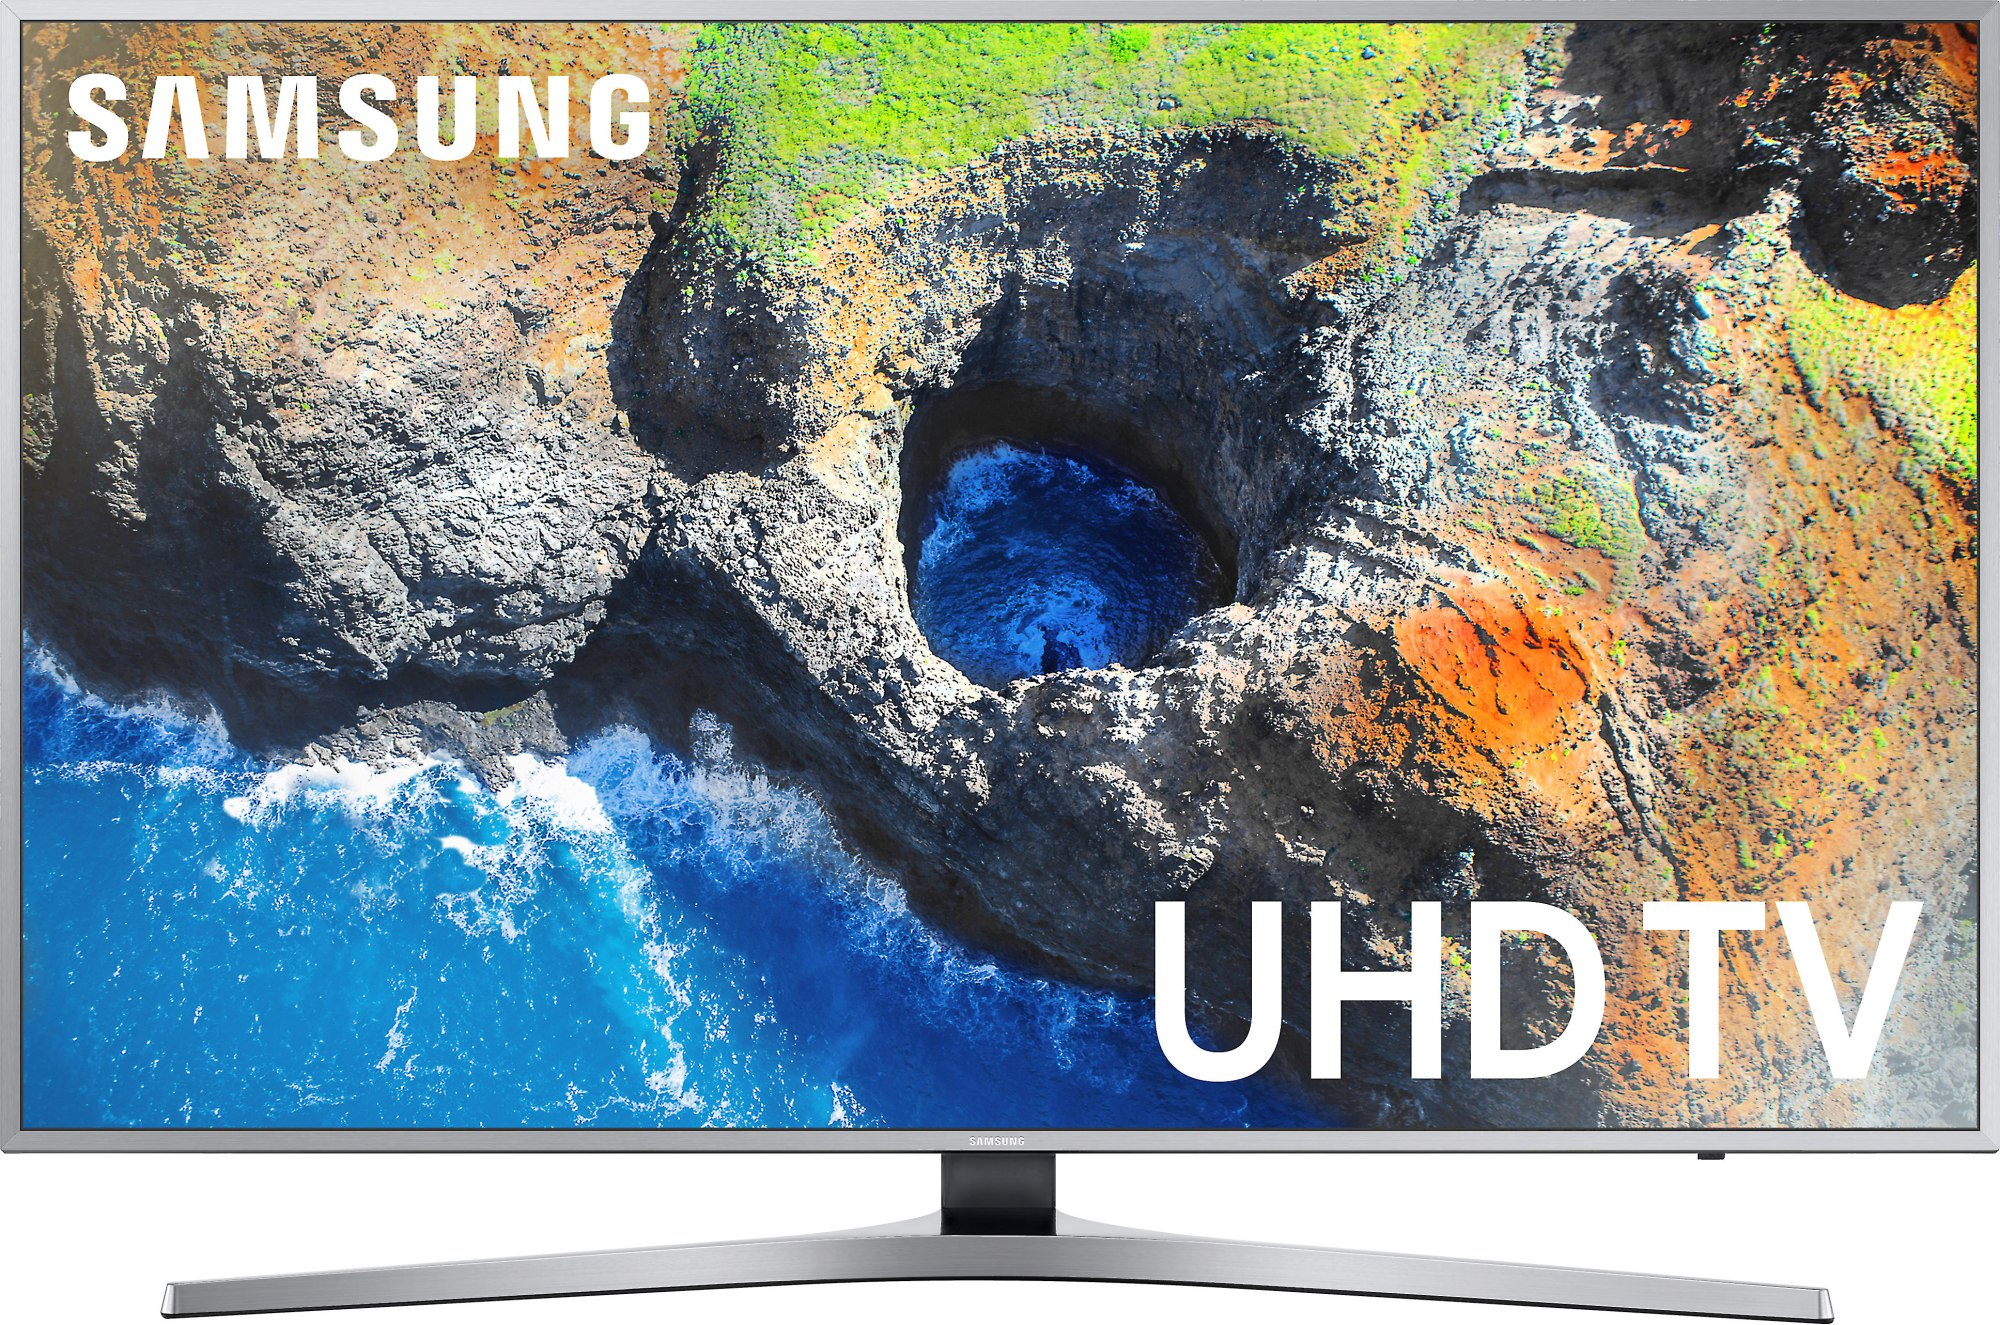 hight resolution of samsung un49mu7000 49 smart led 4k ultra hd tv with hdr 2017 model at crutchfield com